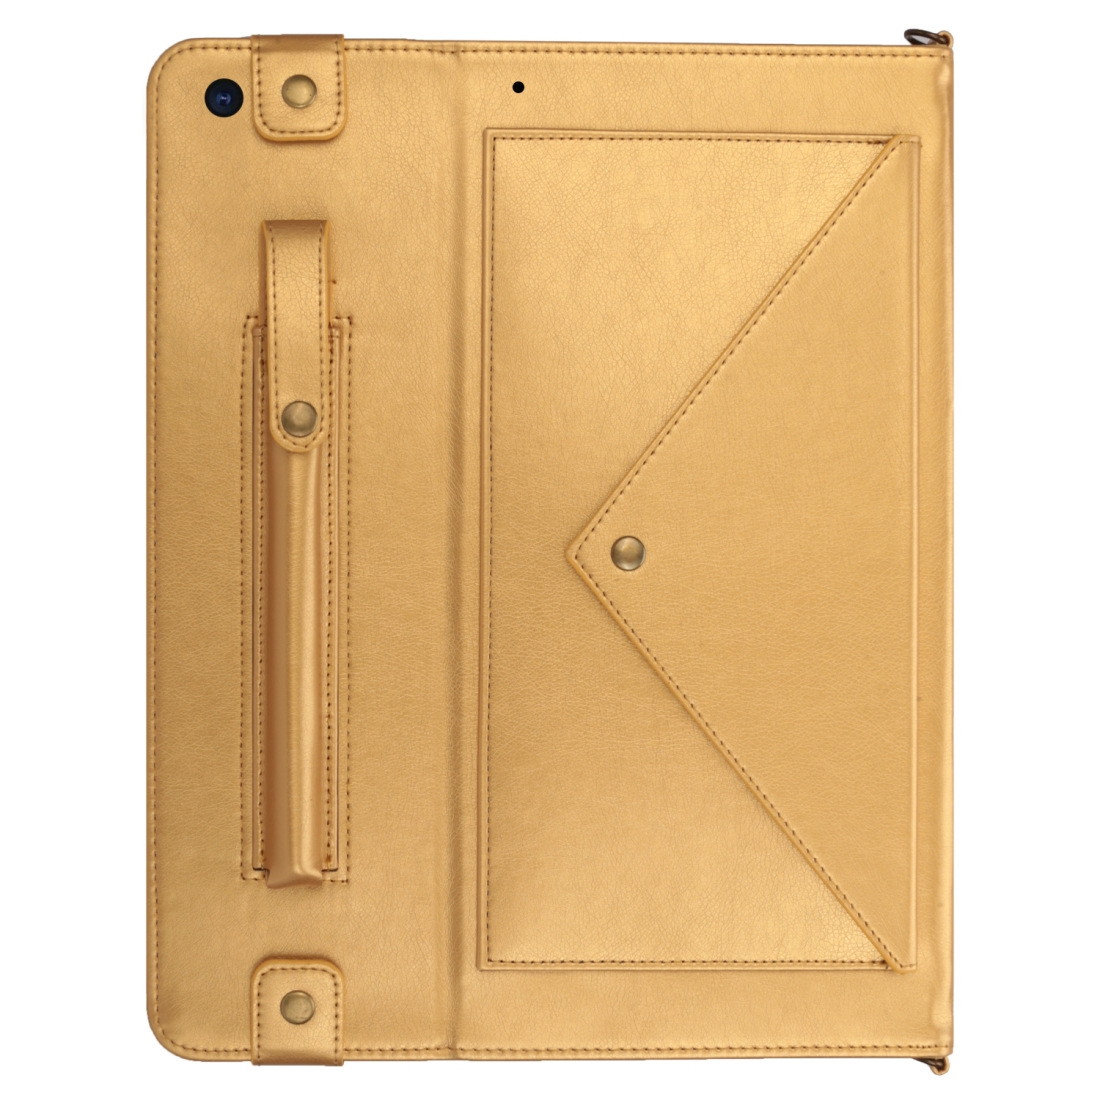 iPad 7th Generation Case (10.2 Inch)  Leather Case, Pen Holder & Slim Profile (Gold)